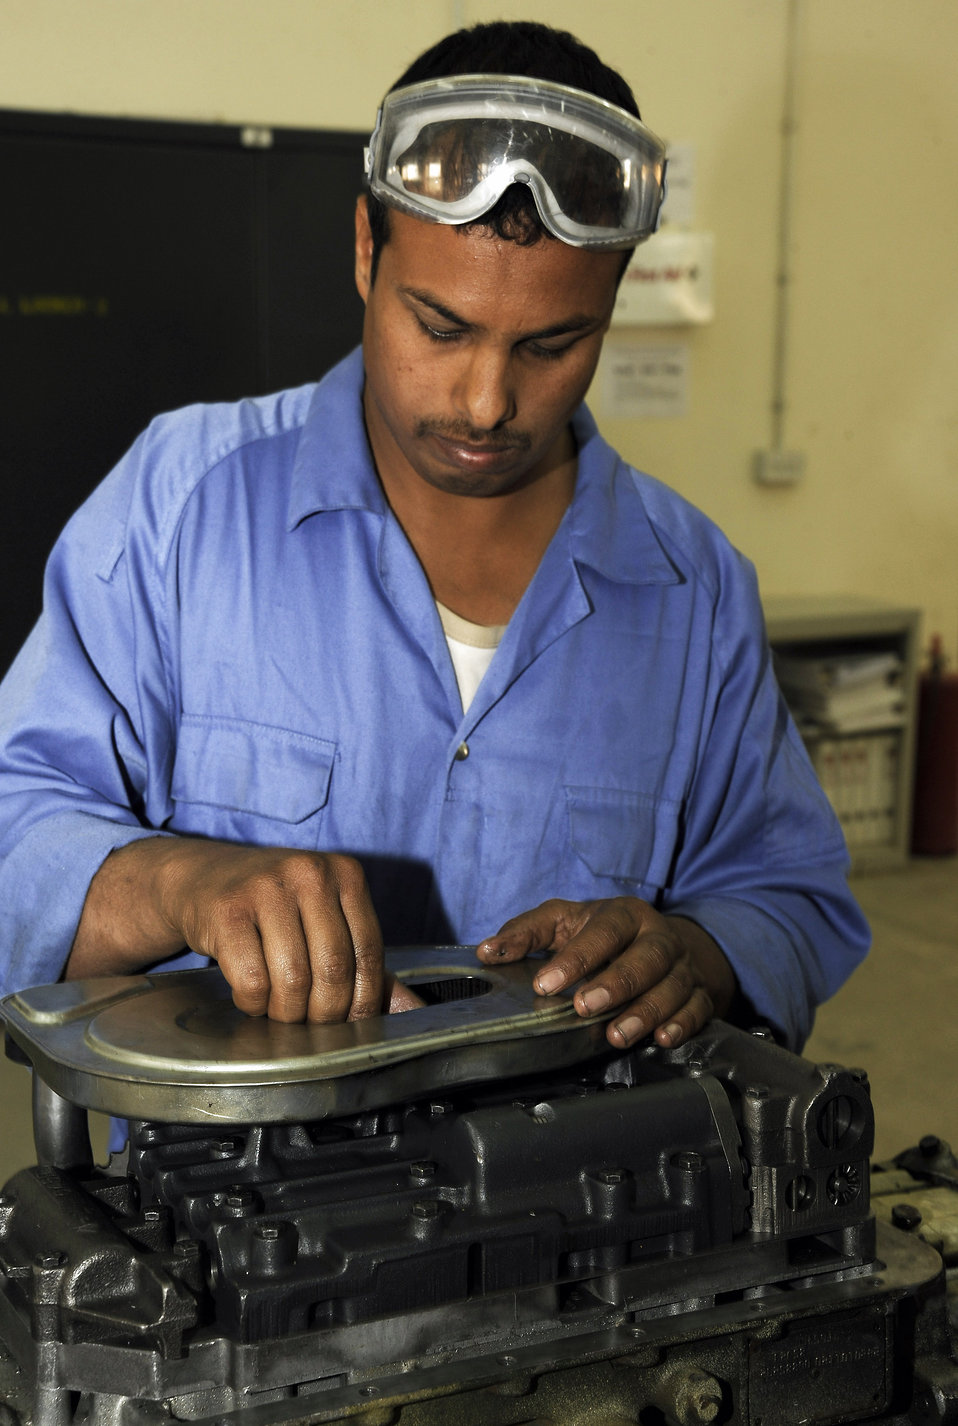 Airman tracks down parts for Iraqi maintenance depot